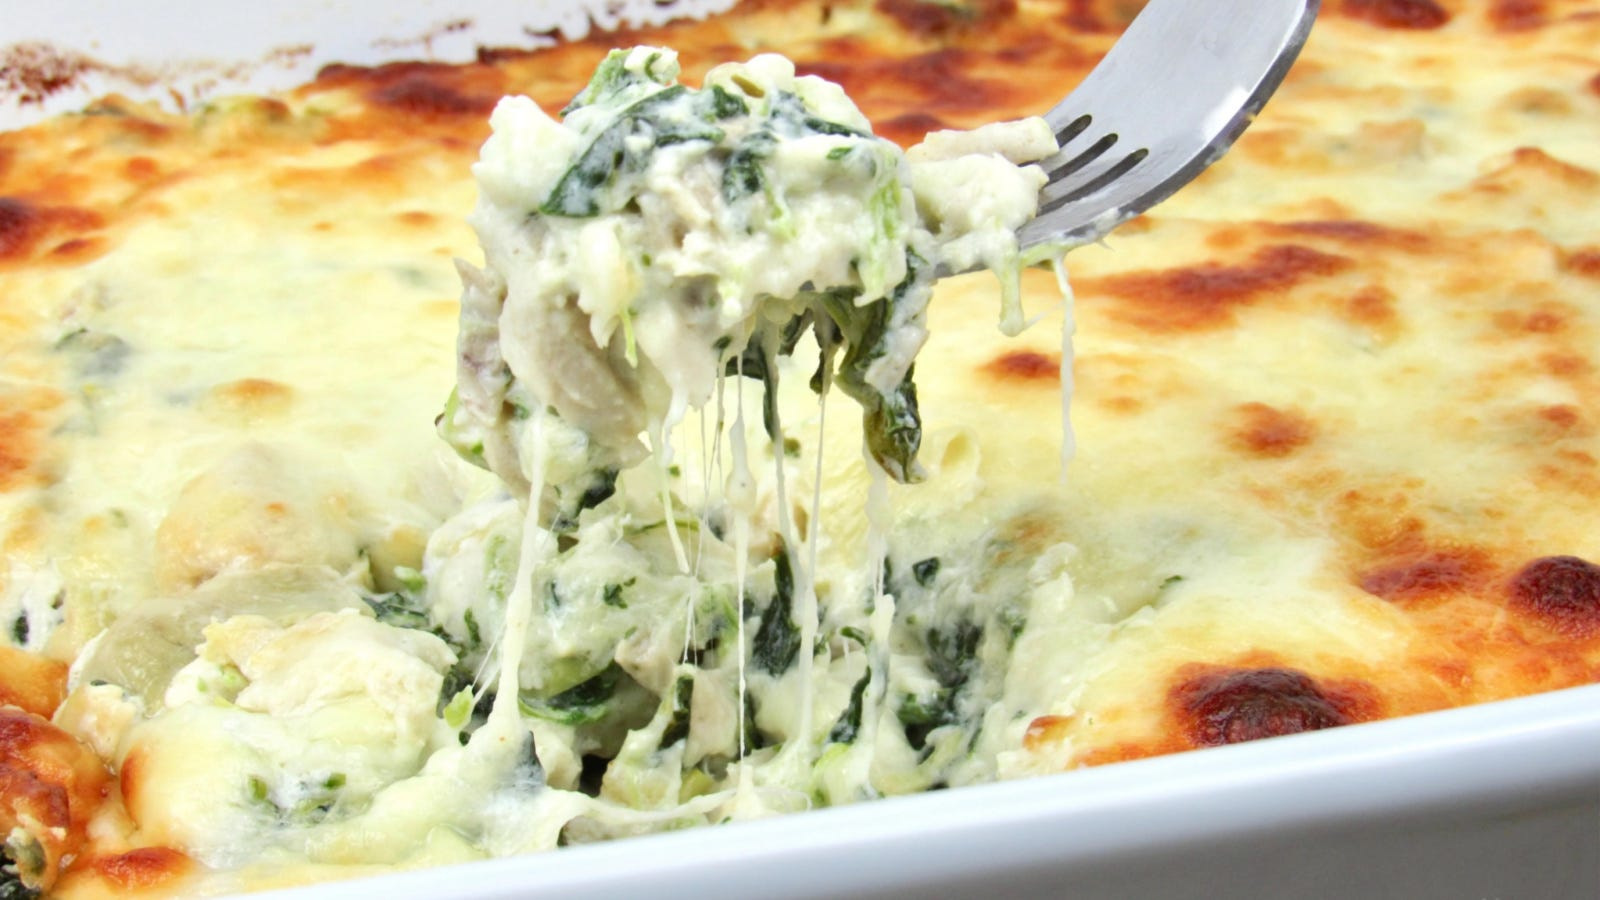 A bubbly hot casserole filled with chicken, spinach, artichoke and loads of melty cheese, with a bite sized piece being pulled up by a fork.